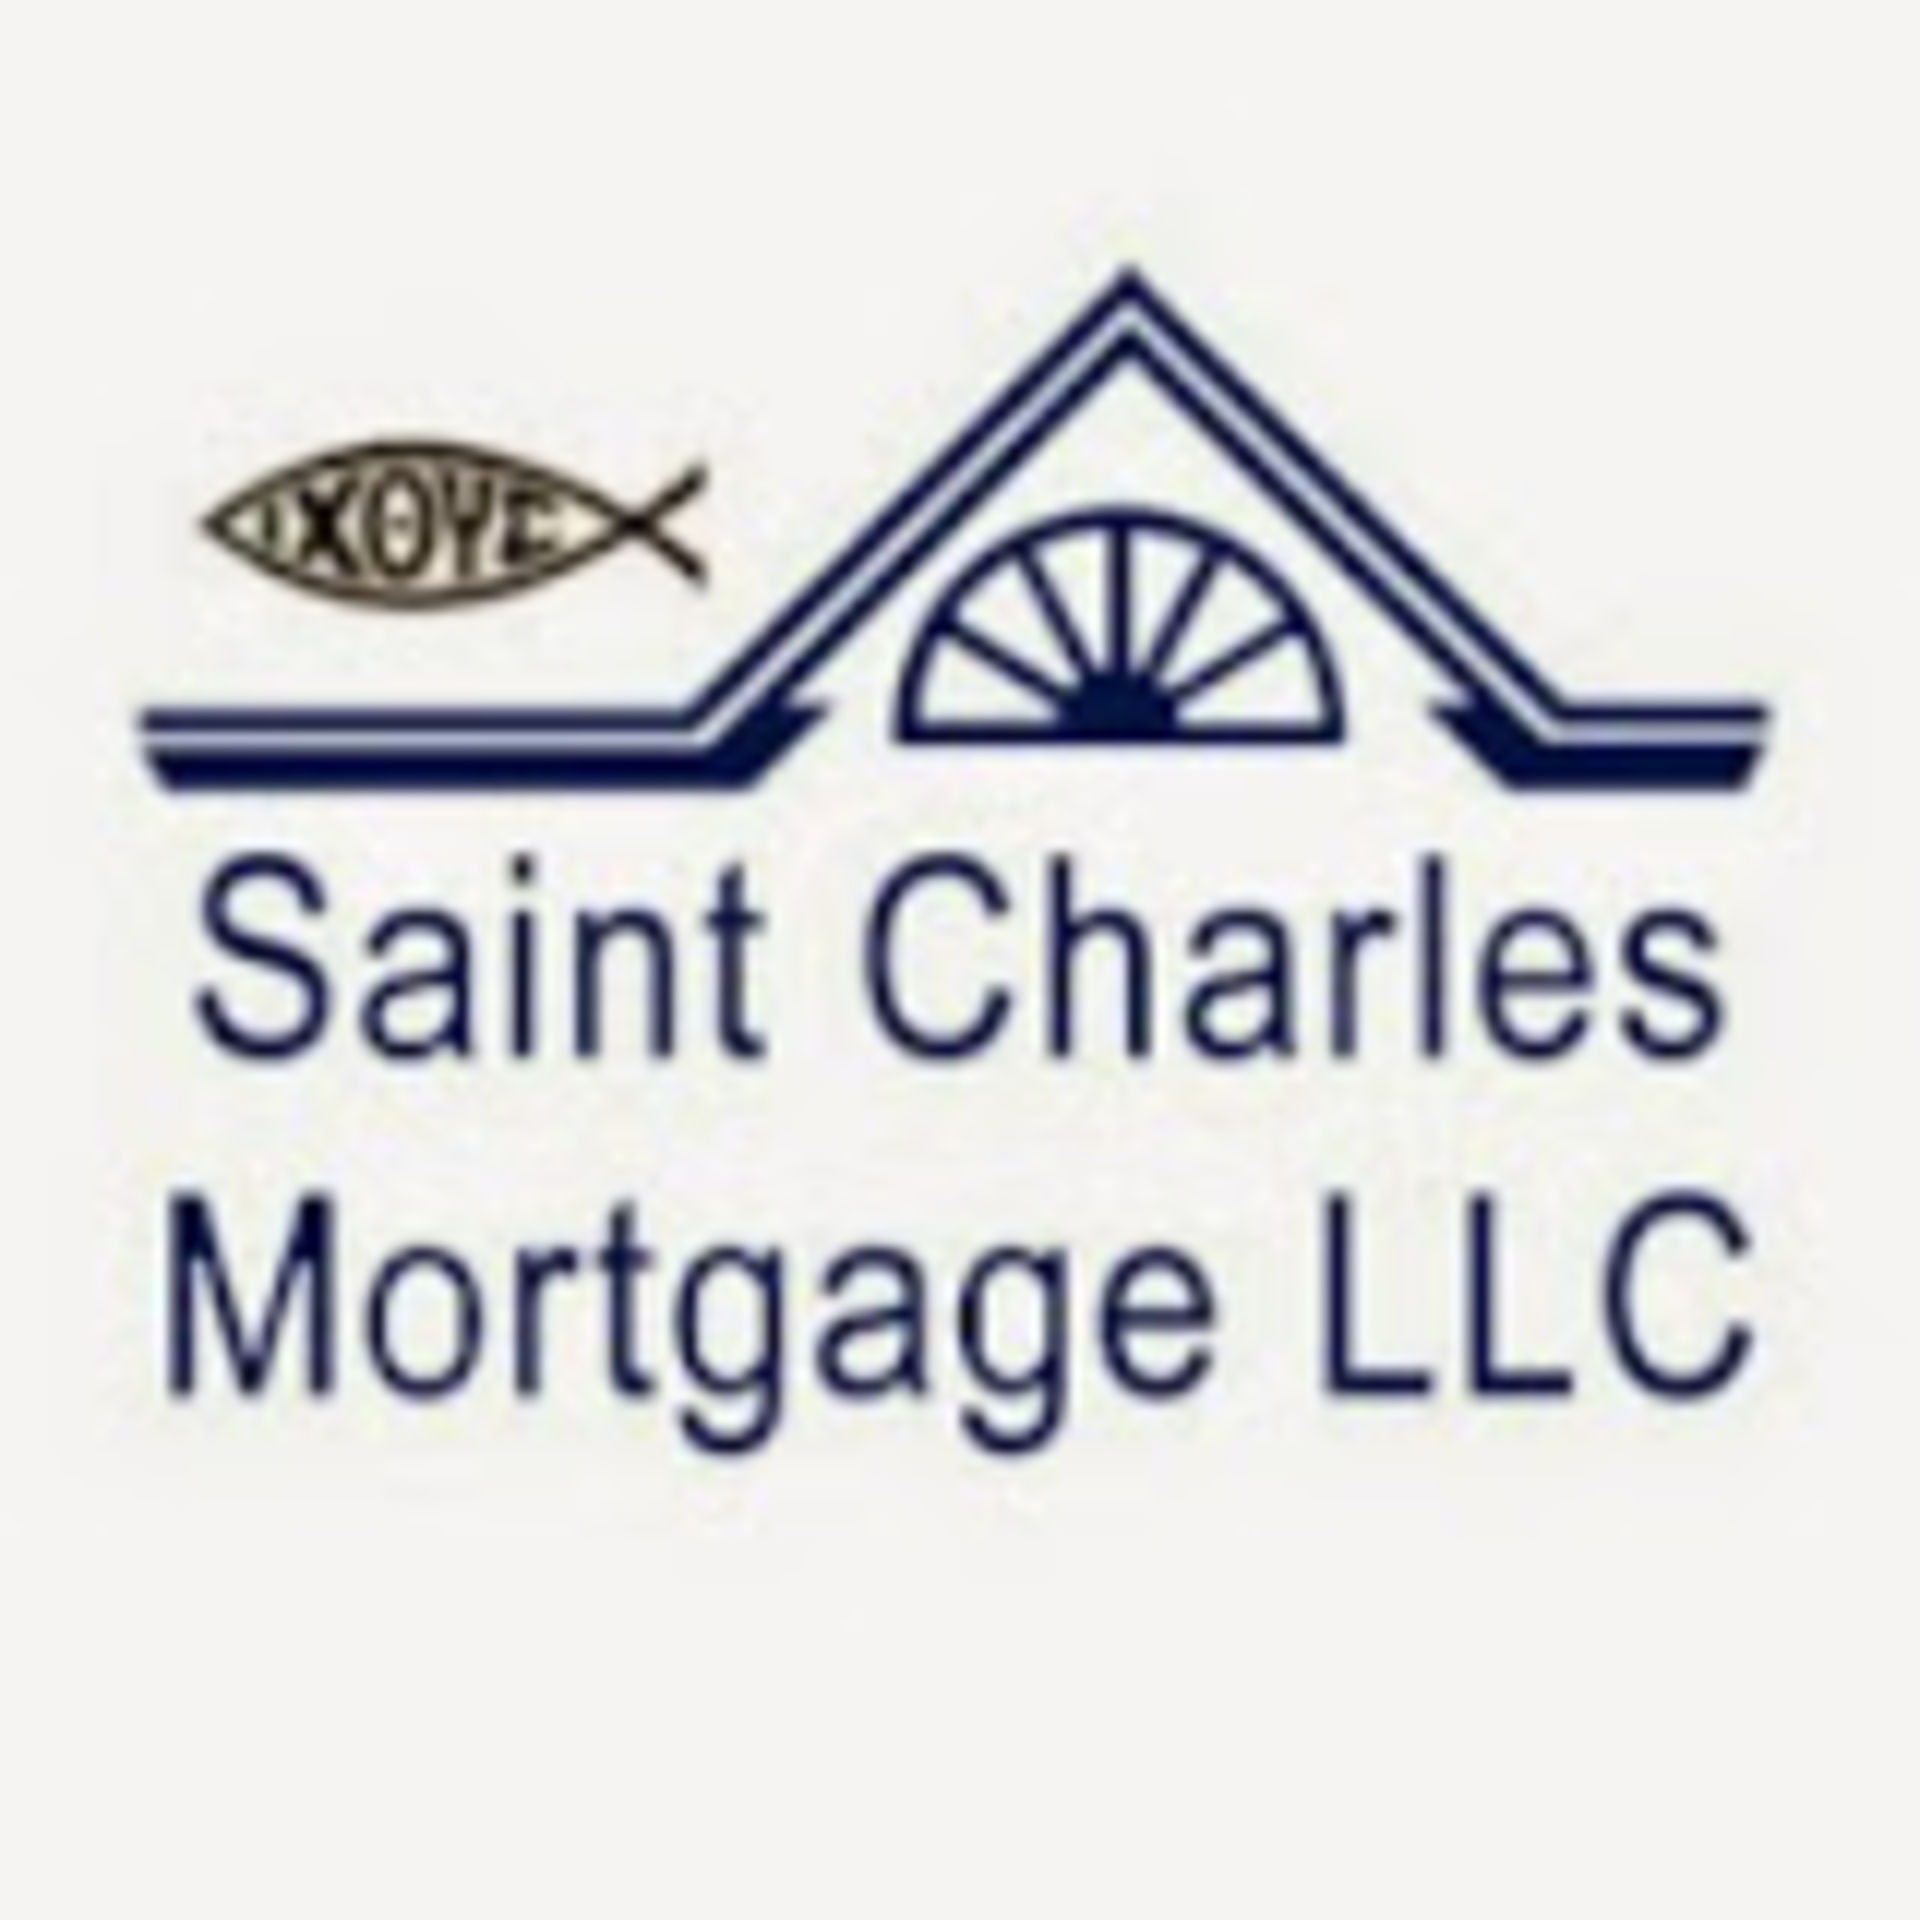 Premier Mortgage Company in Houston Texas and surrounding areas.